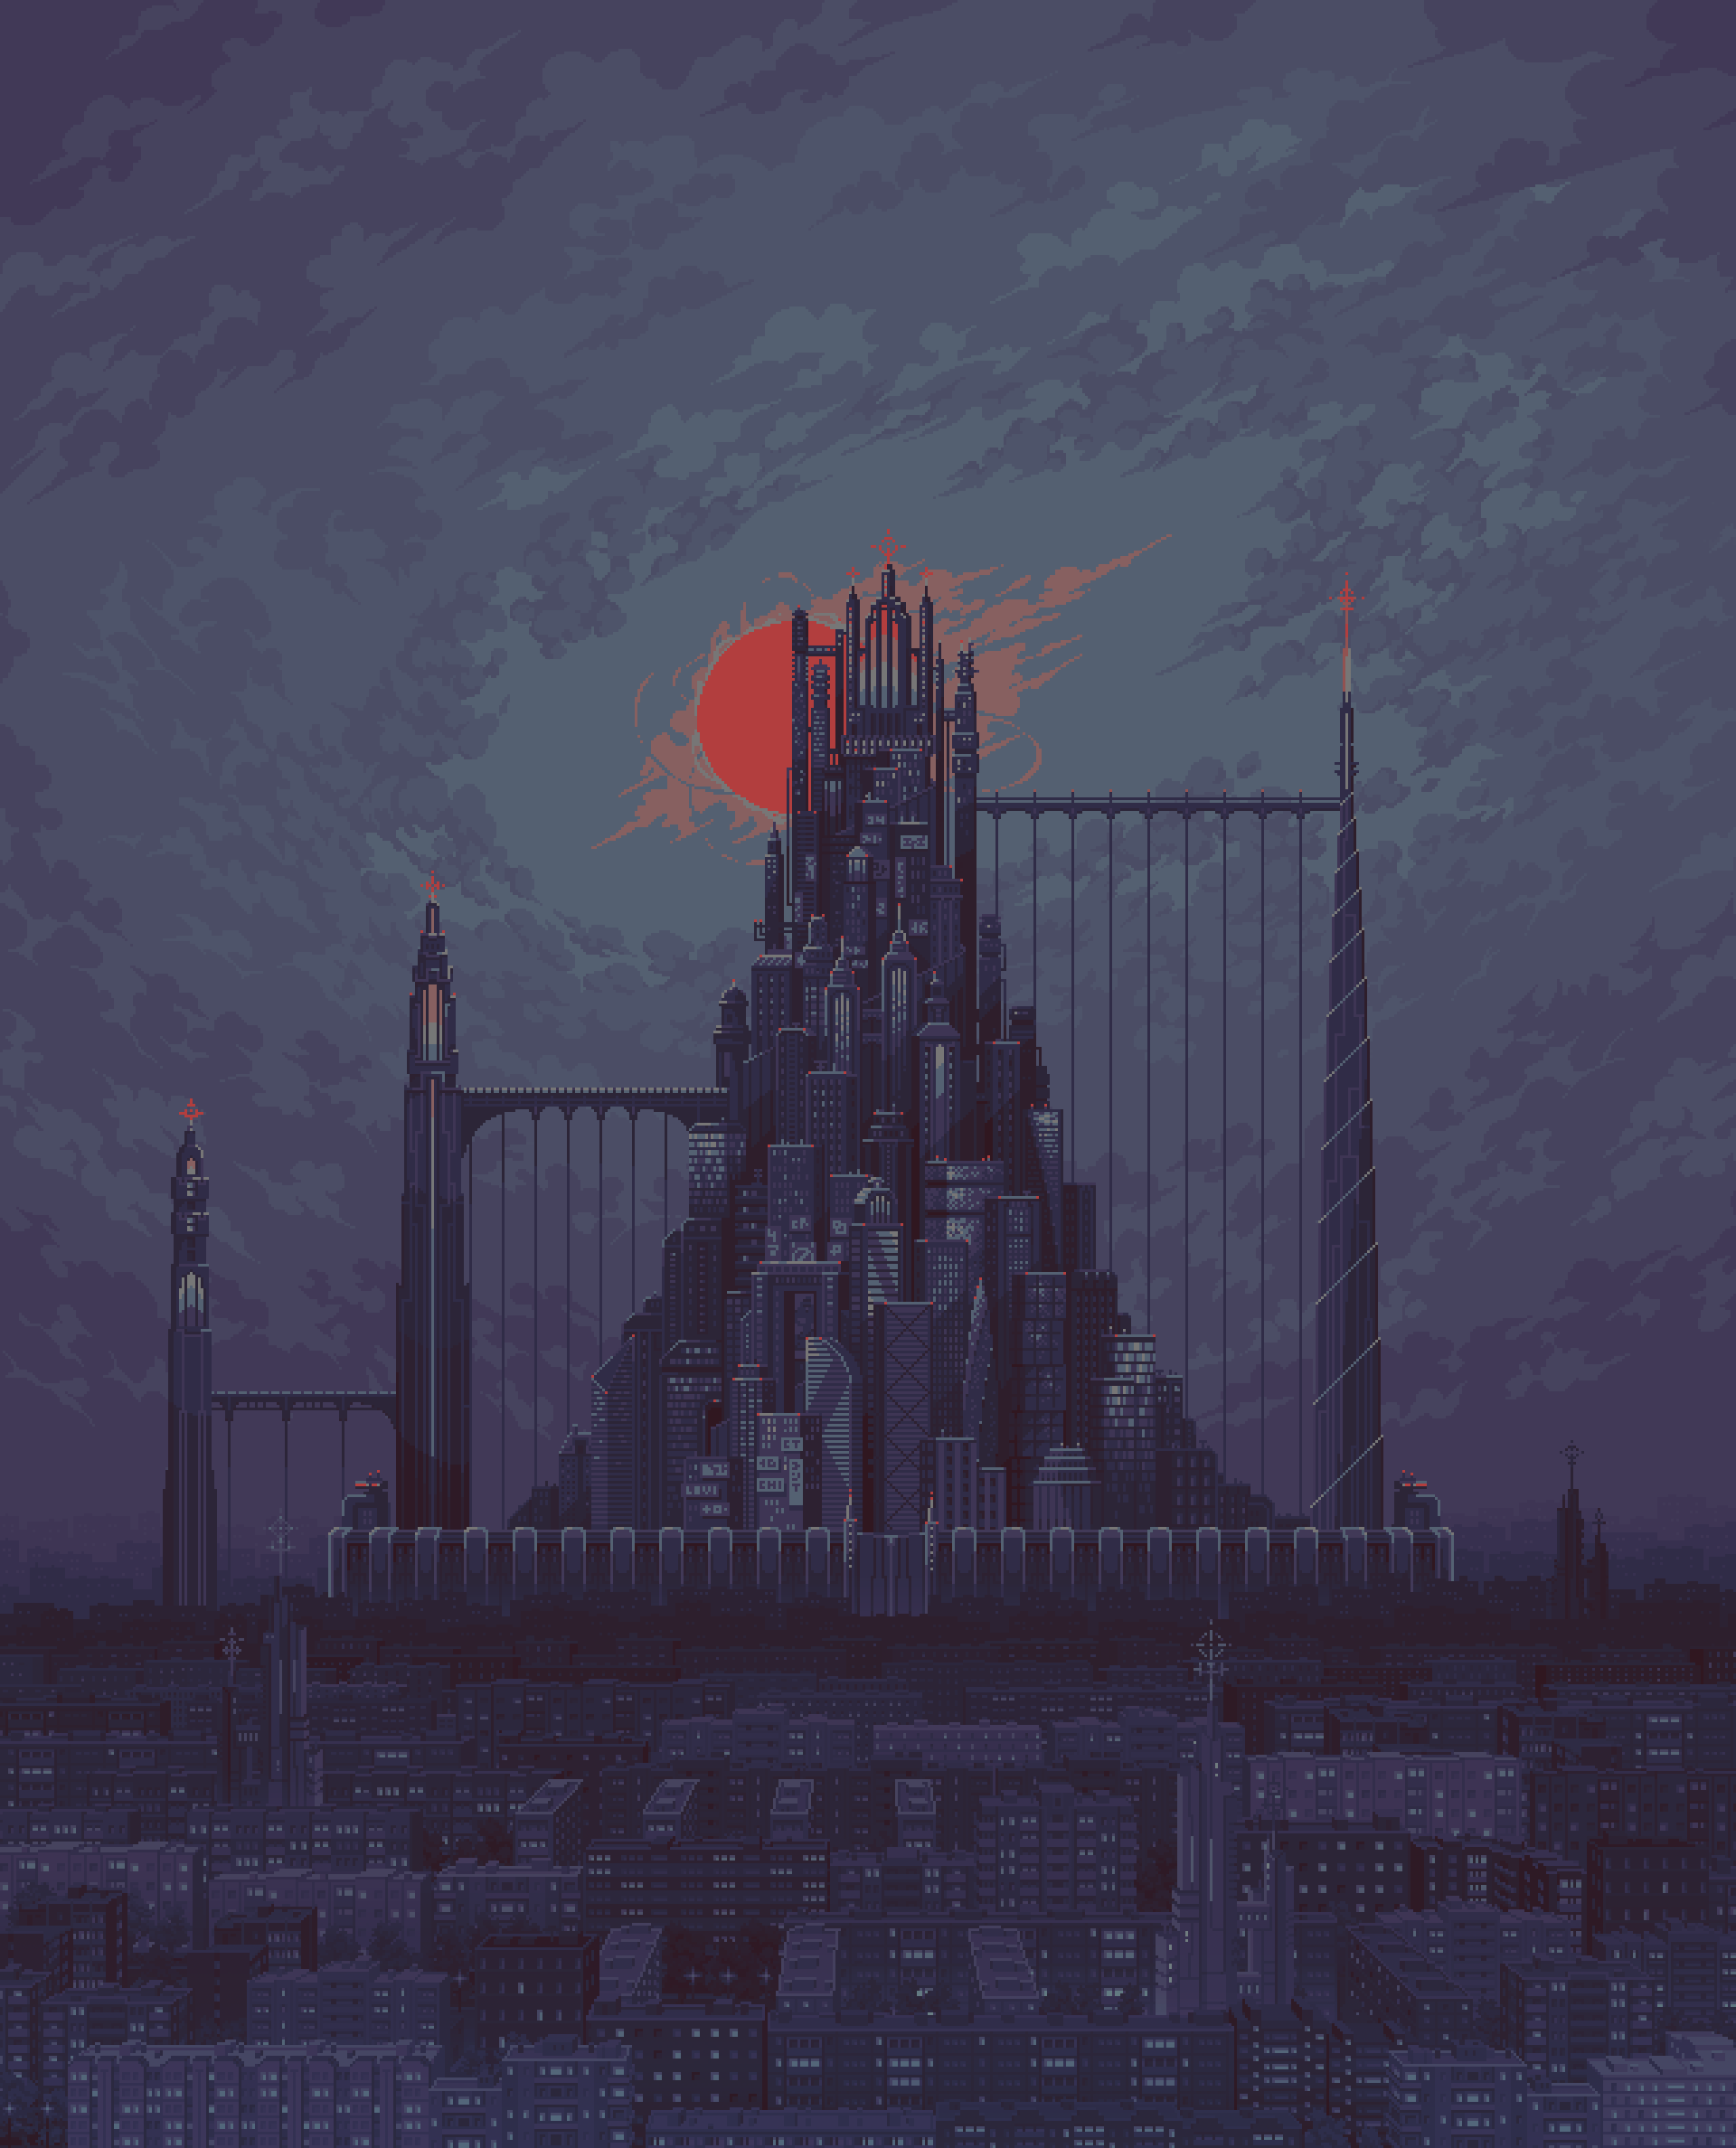 City background for our game project